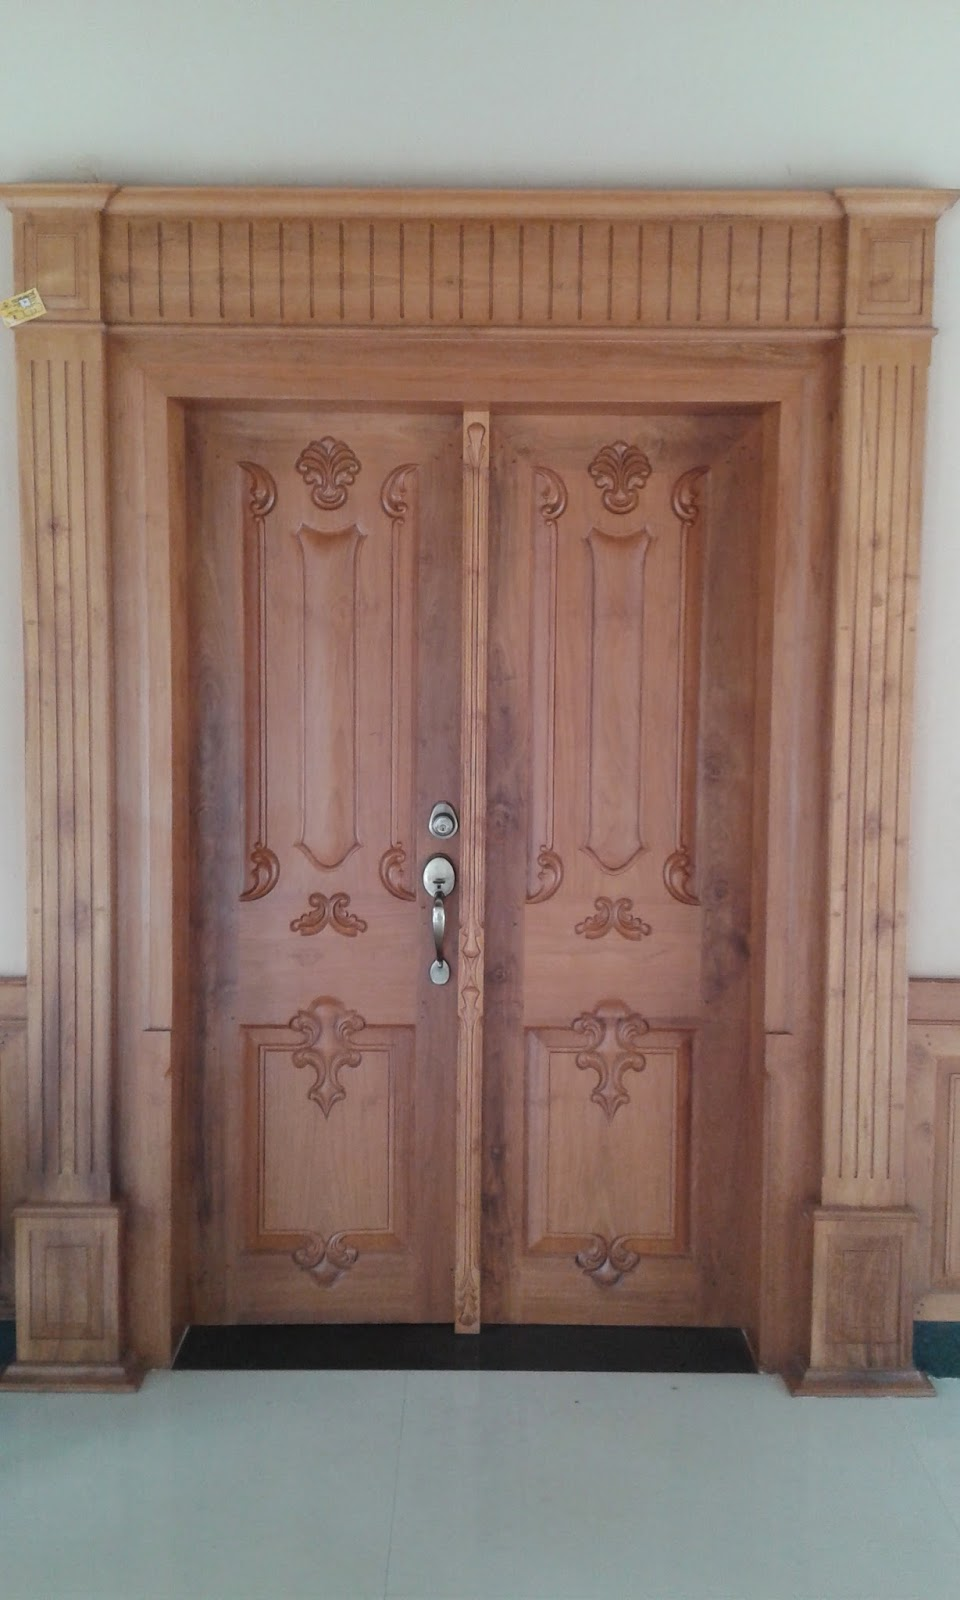 Kerala style carpenter works and designs Main door wooden design